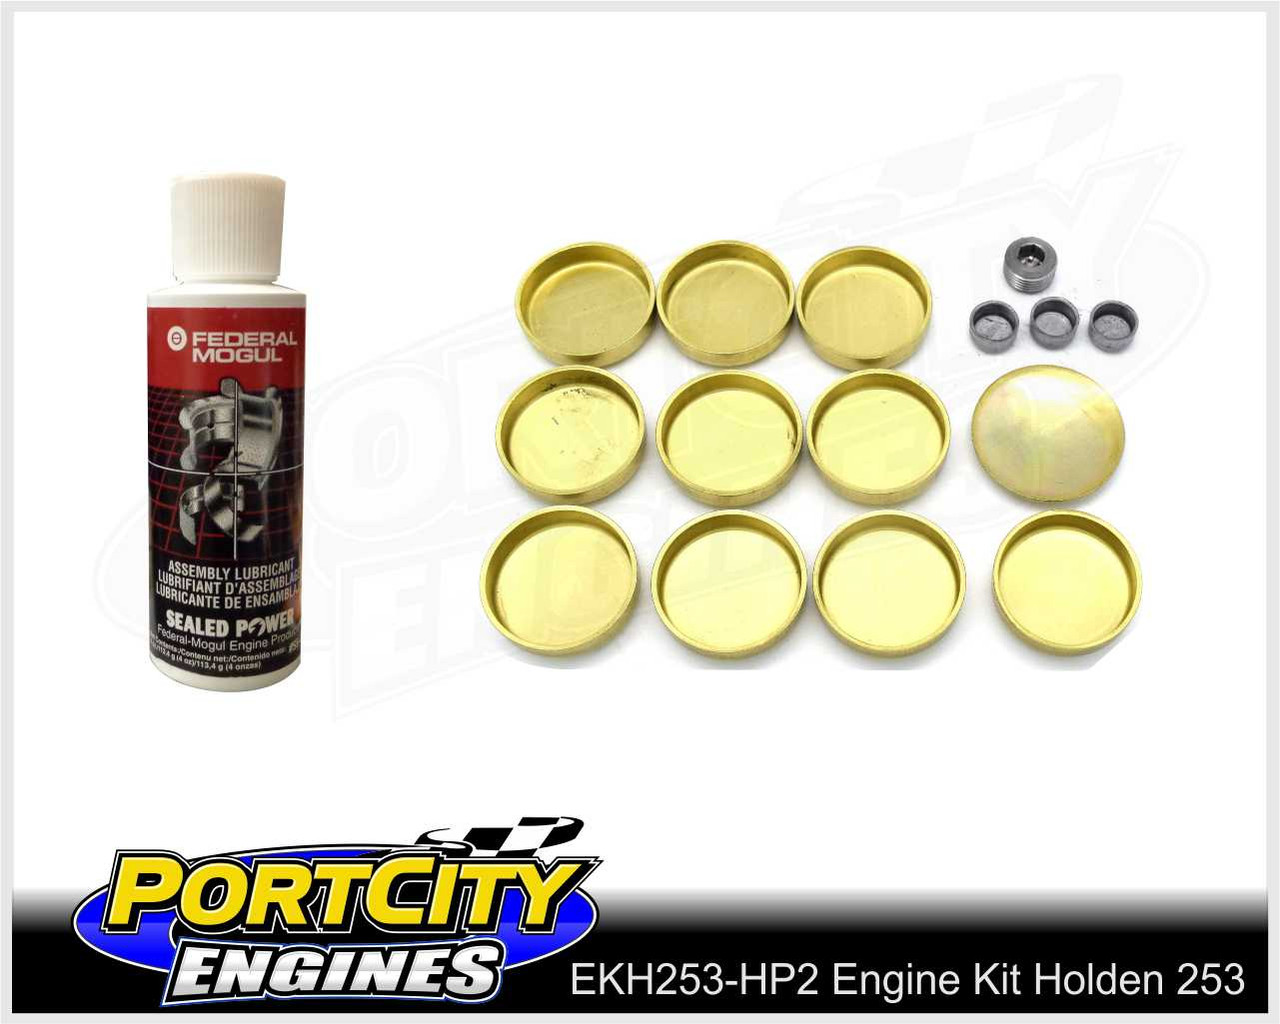 Brass core plug set and Engine assembly lube